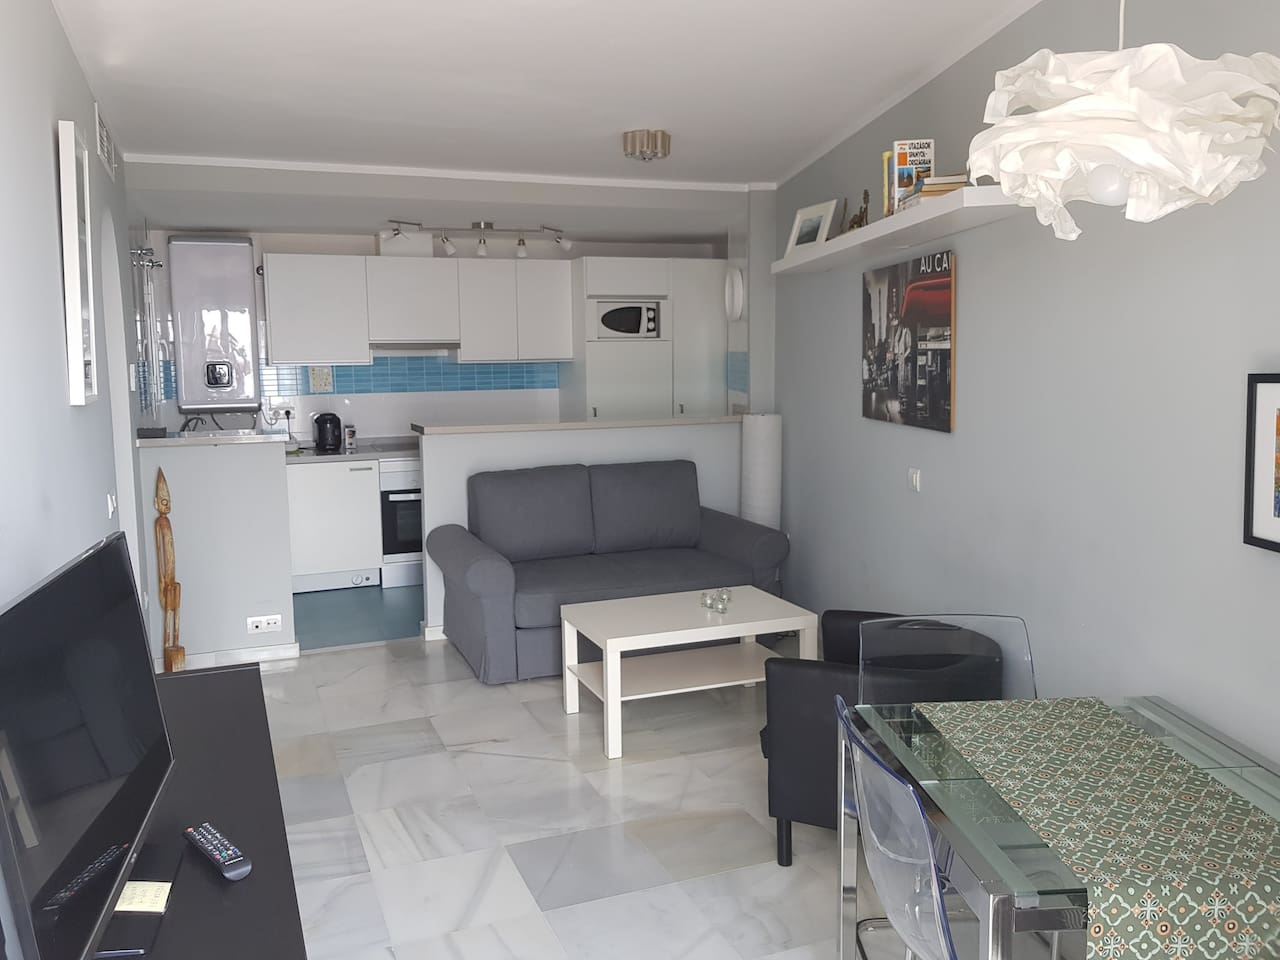 Youthful newly built apartment